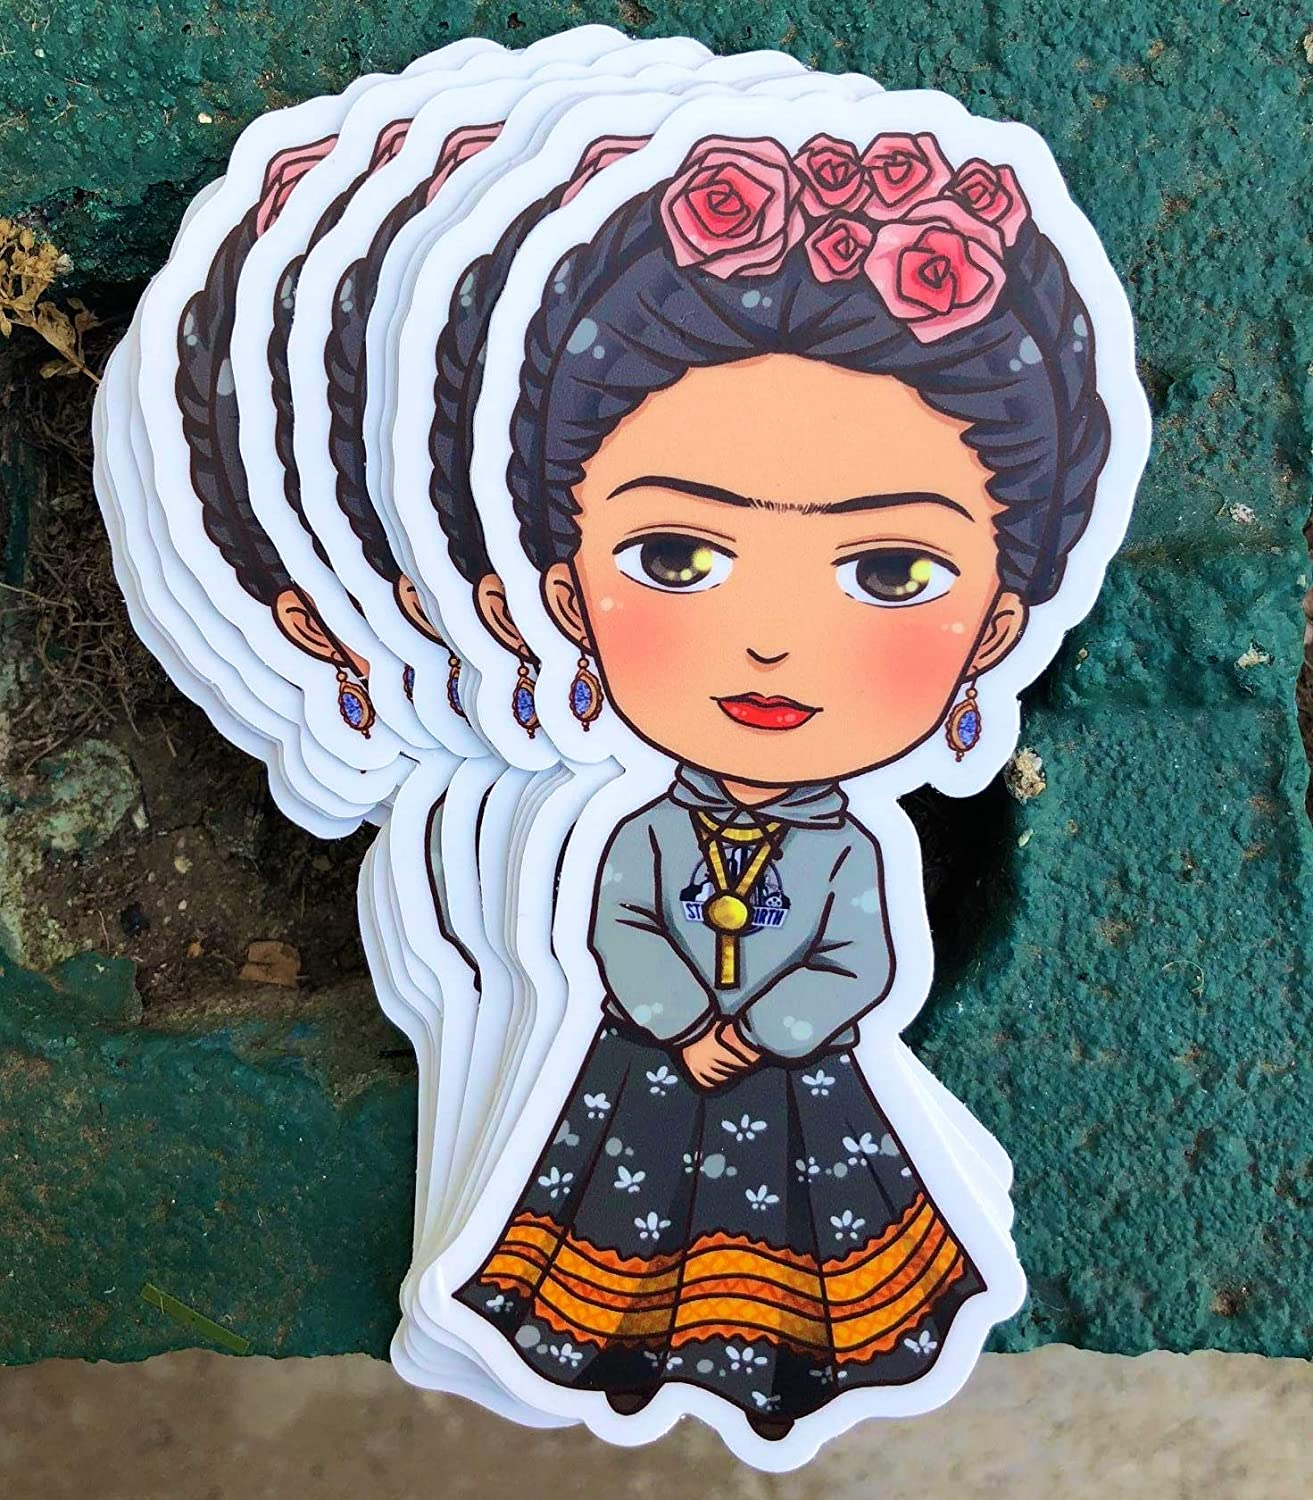 1 Gorgeous Miss UniBrow Sticker - One 5 Inch WaterProof Vinyl - Decal For Hydro Flask Skateboard Laptop etc